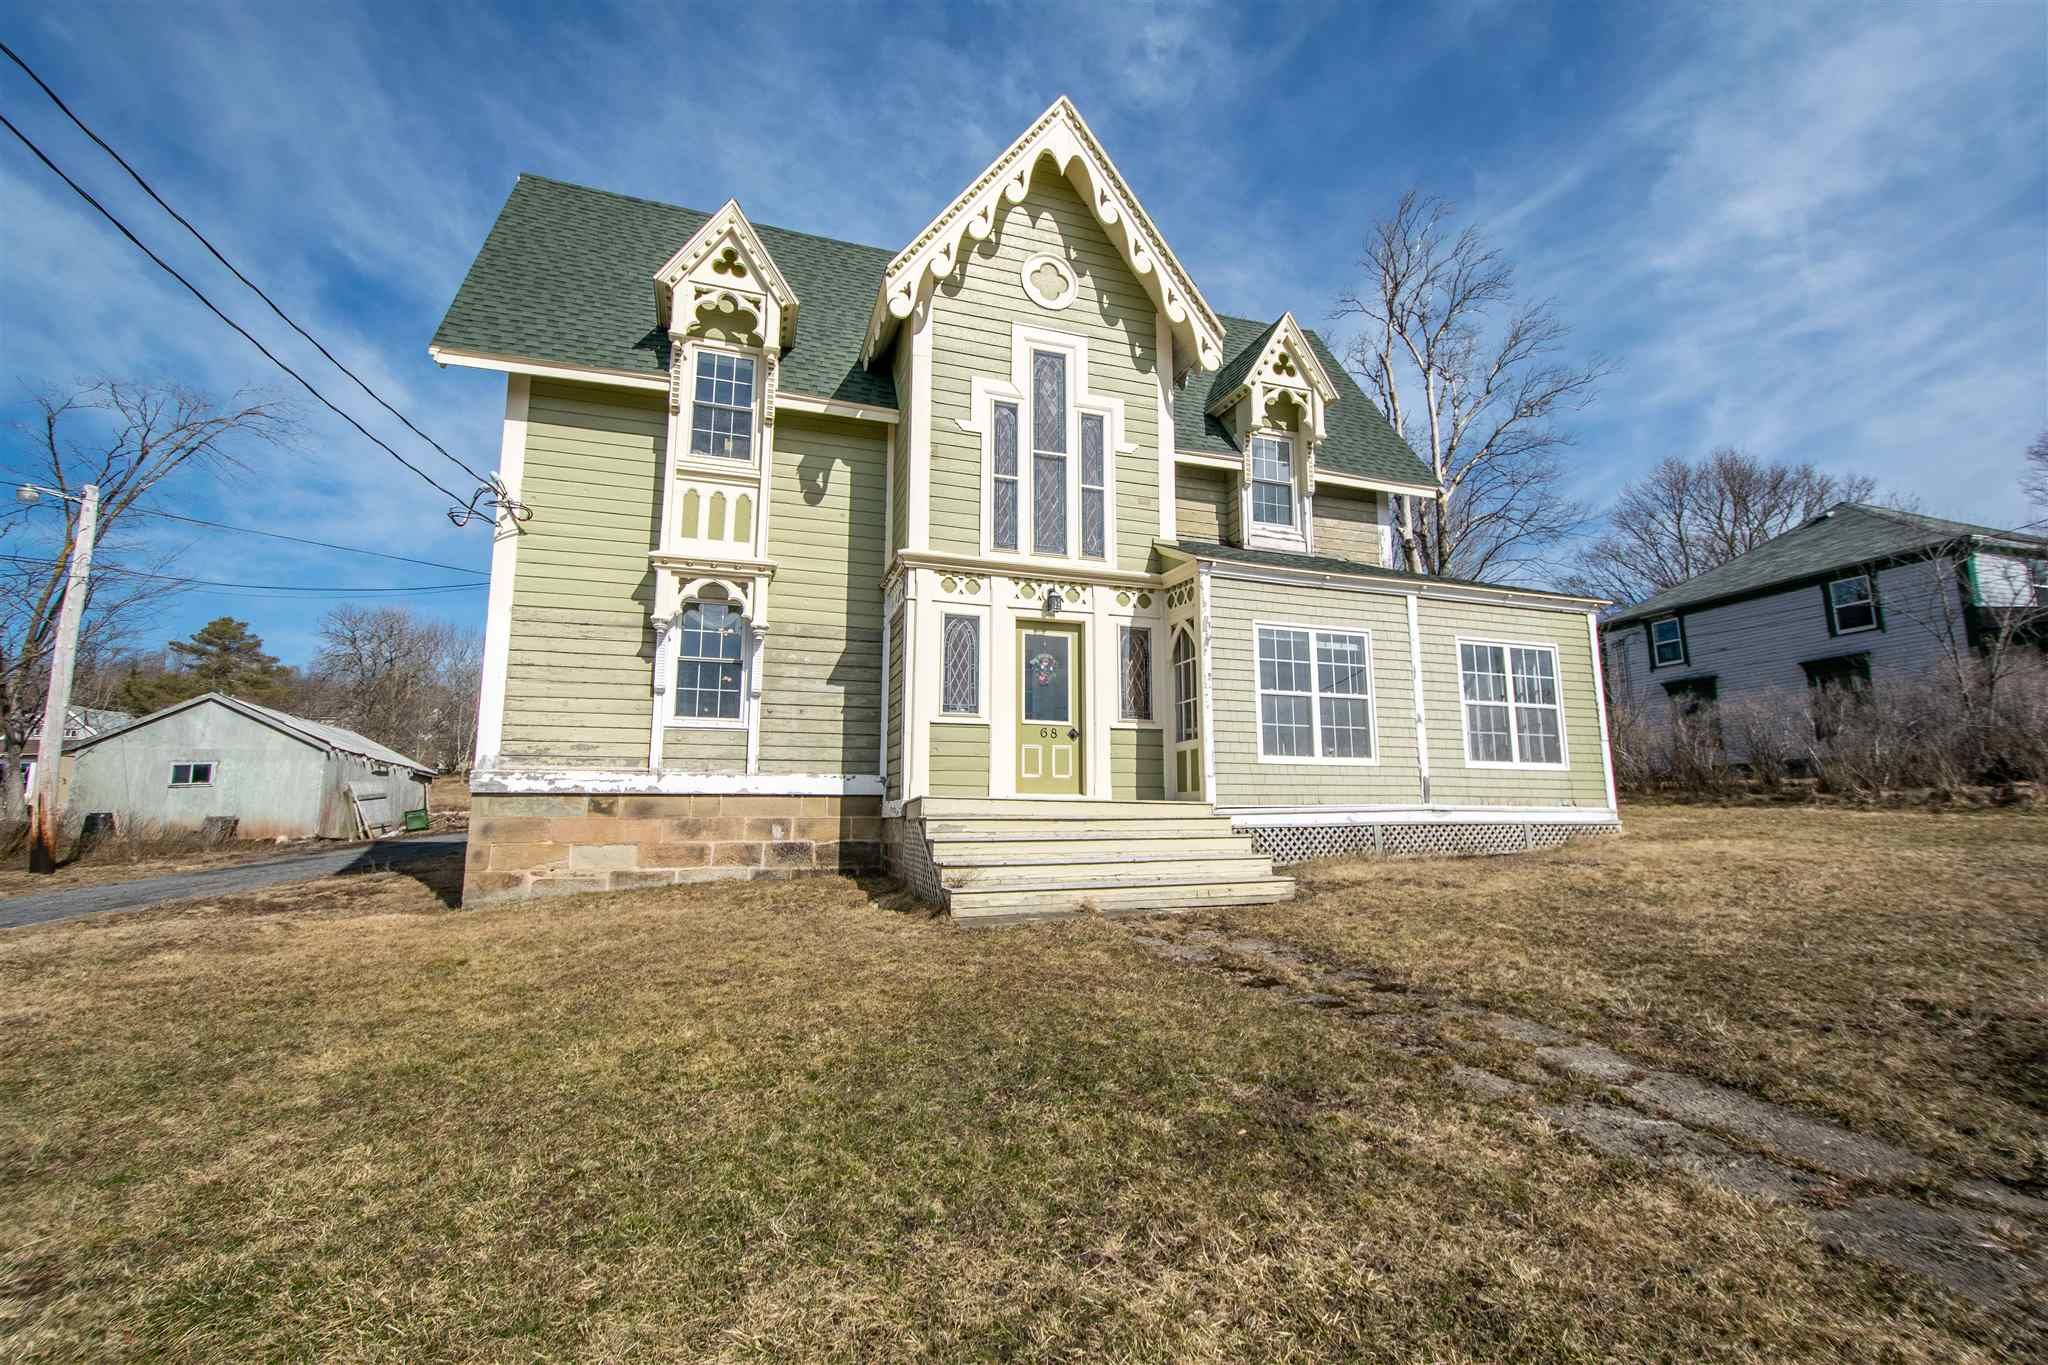 Main Photo: 68 Front Street in Pictou: 107-Trenton,Westville,Pictou Residential for sale (Northern Region)  : MLS®# 202108631